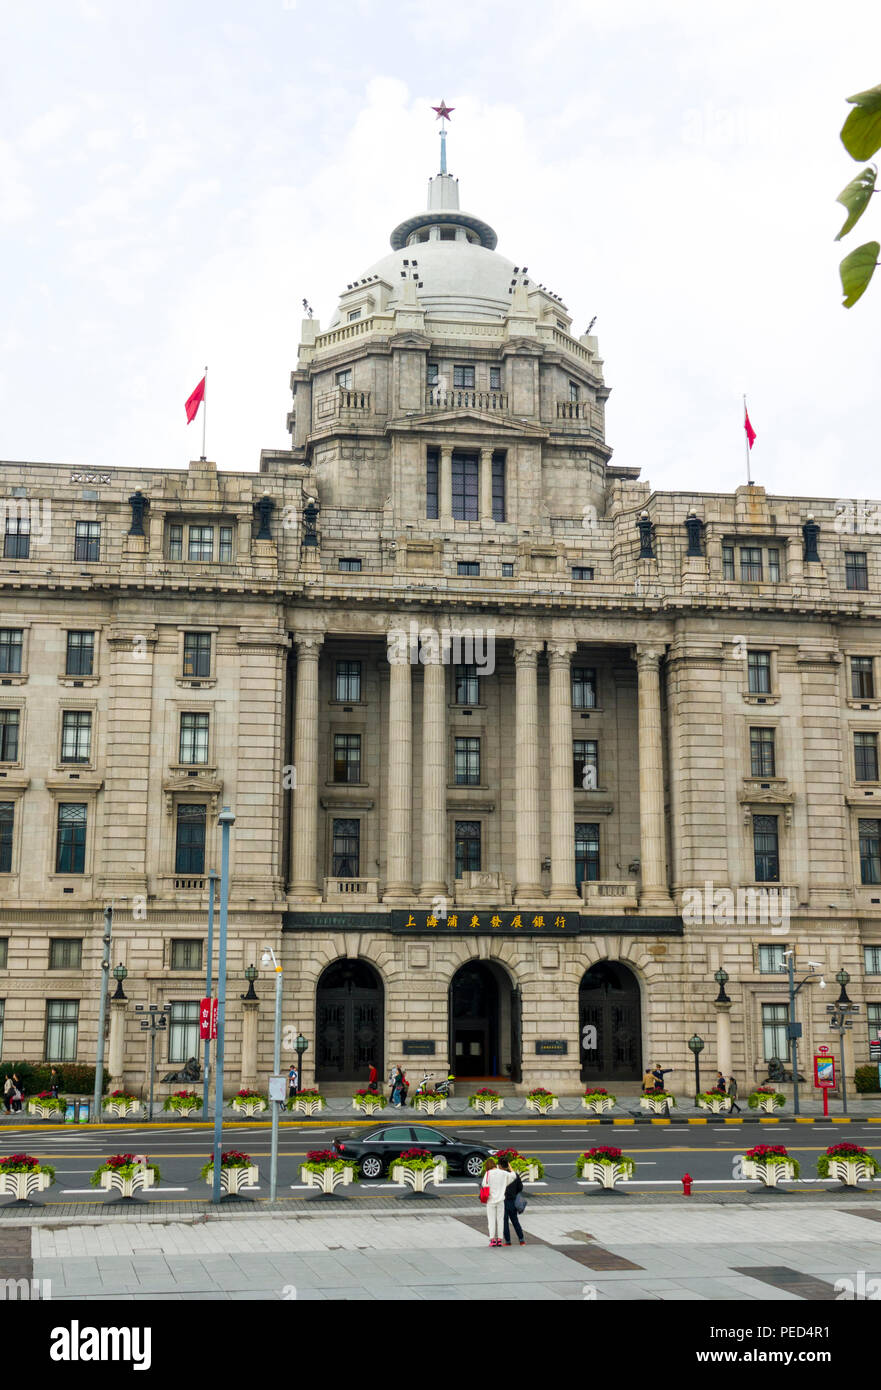 Hong Kong And Shanghai Bank Building And The Shanghai Custom House Building China Asia Stock Photo Alamy